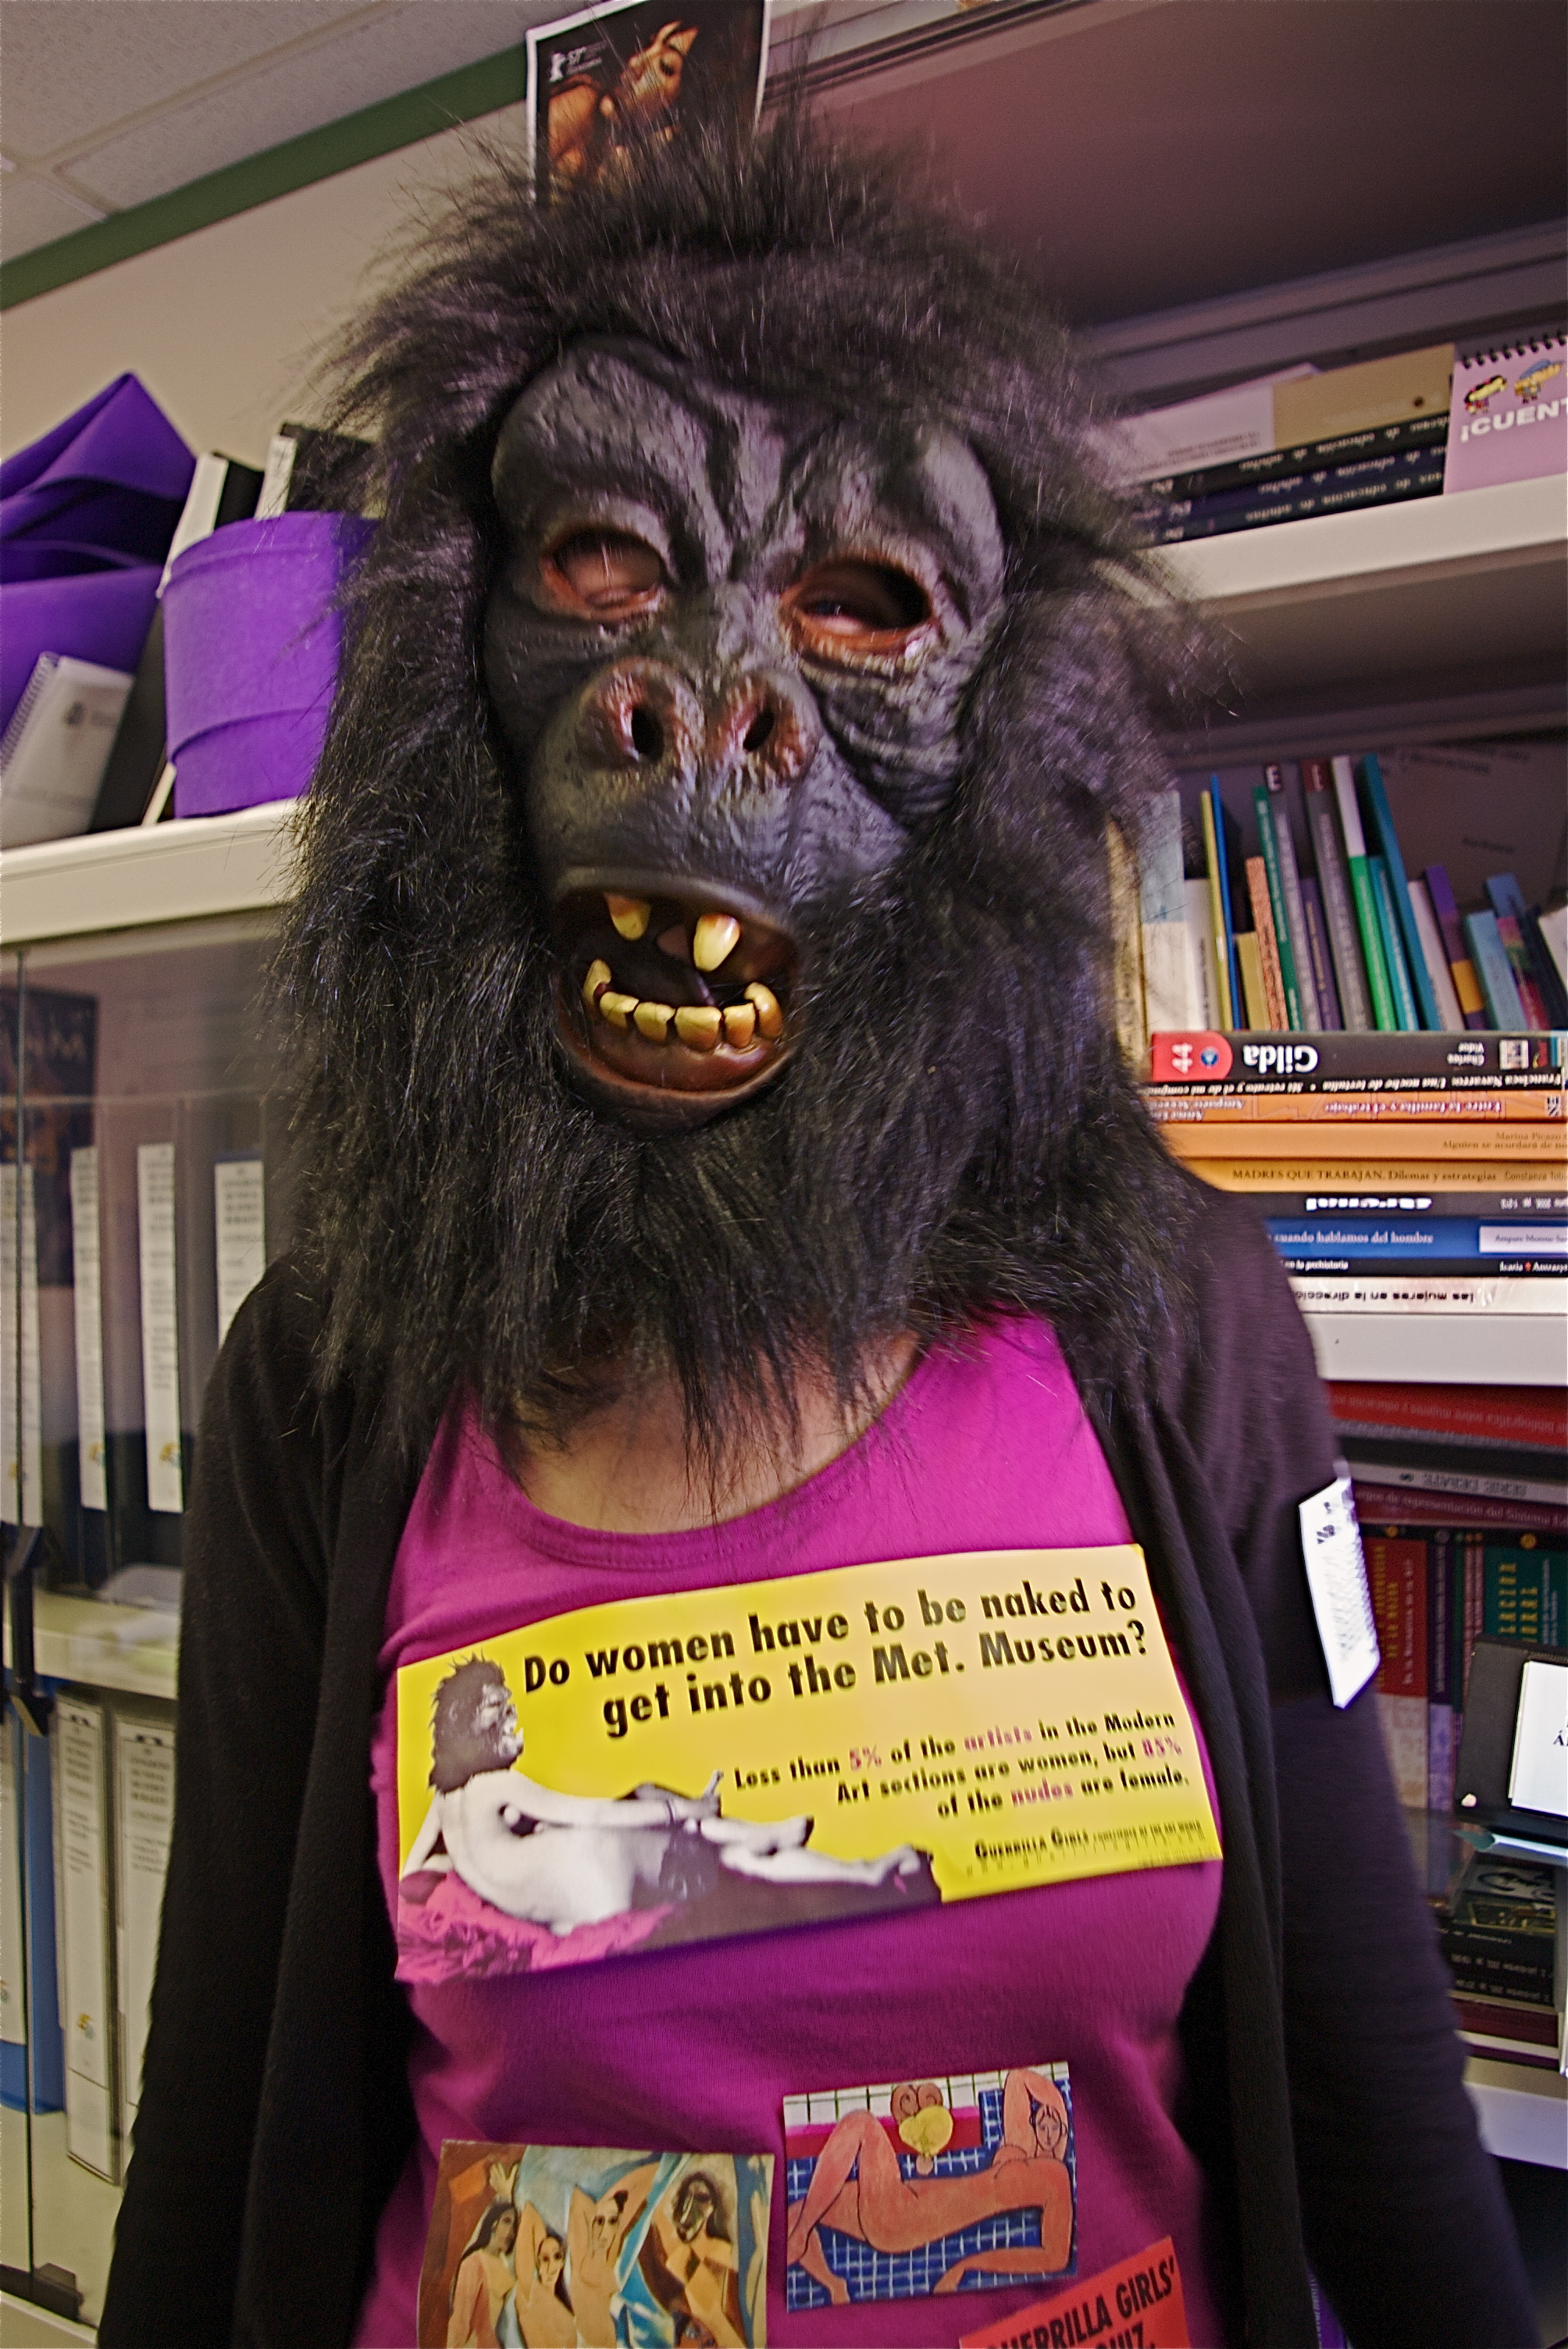 Image of Guerrilla Girls from Wikidata